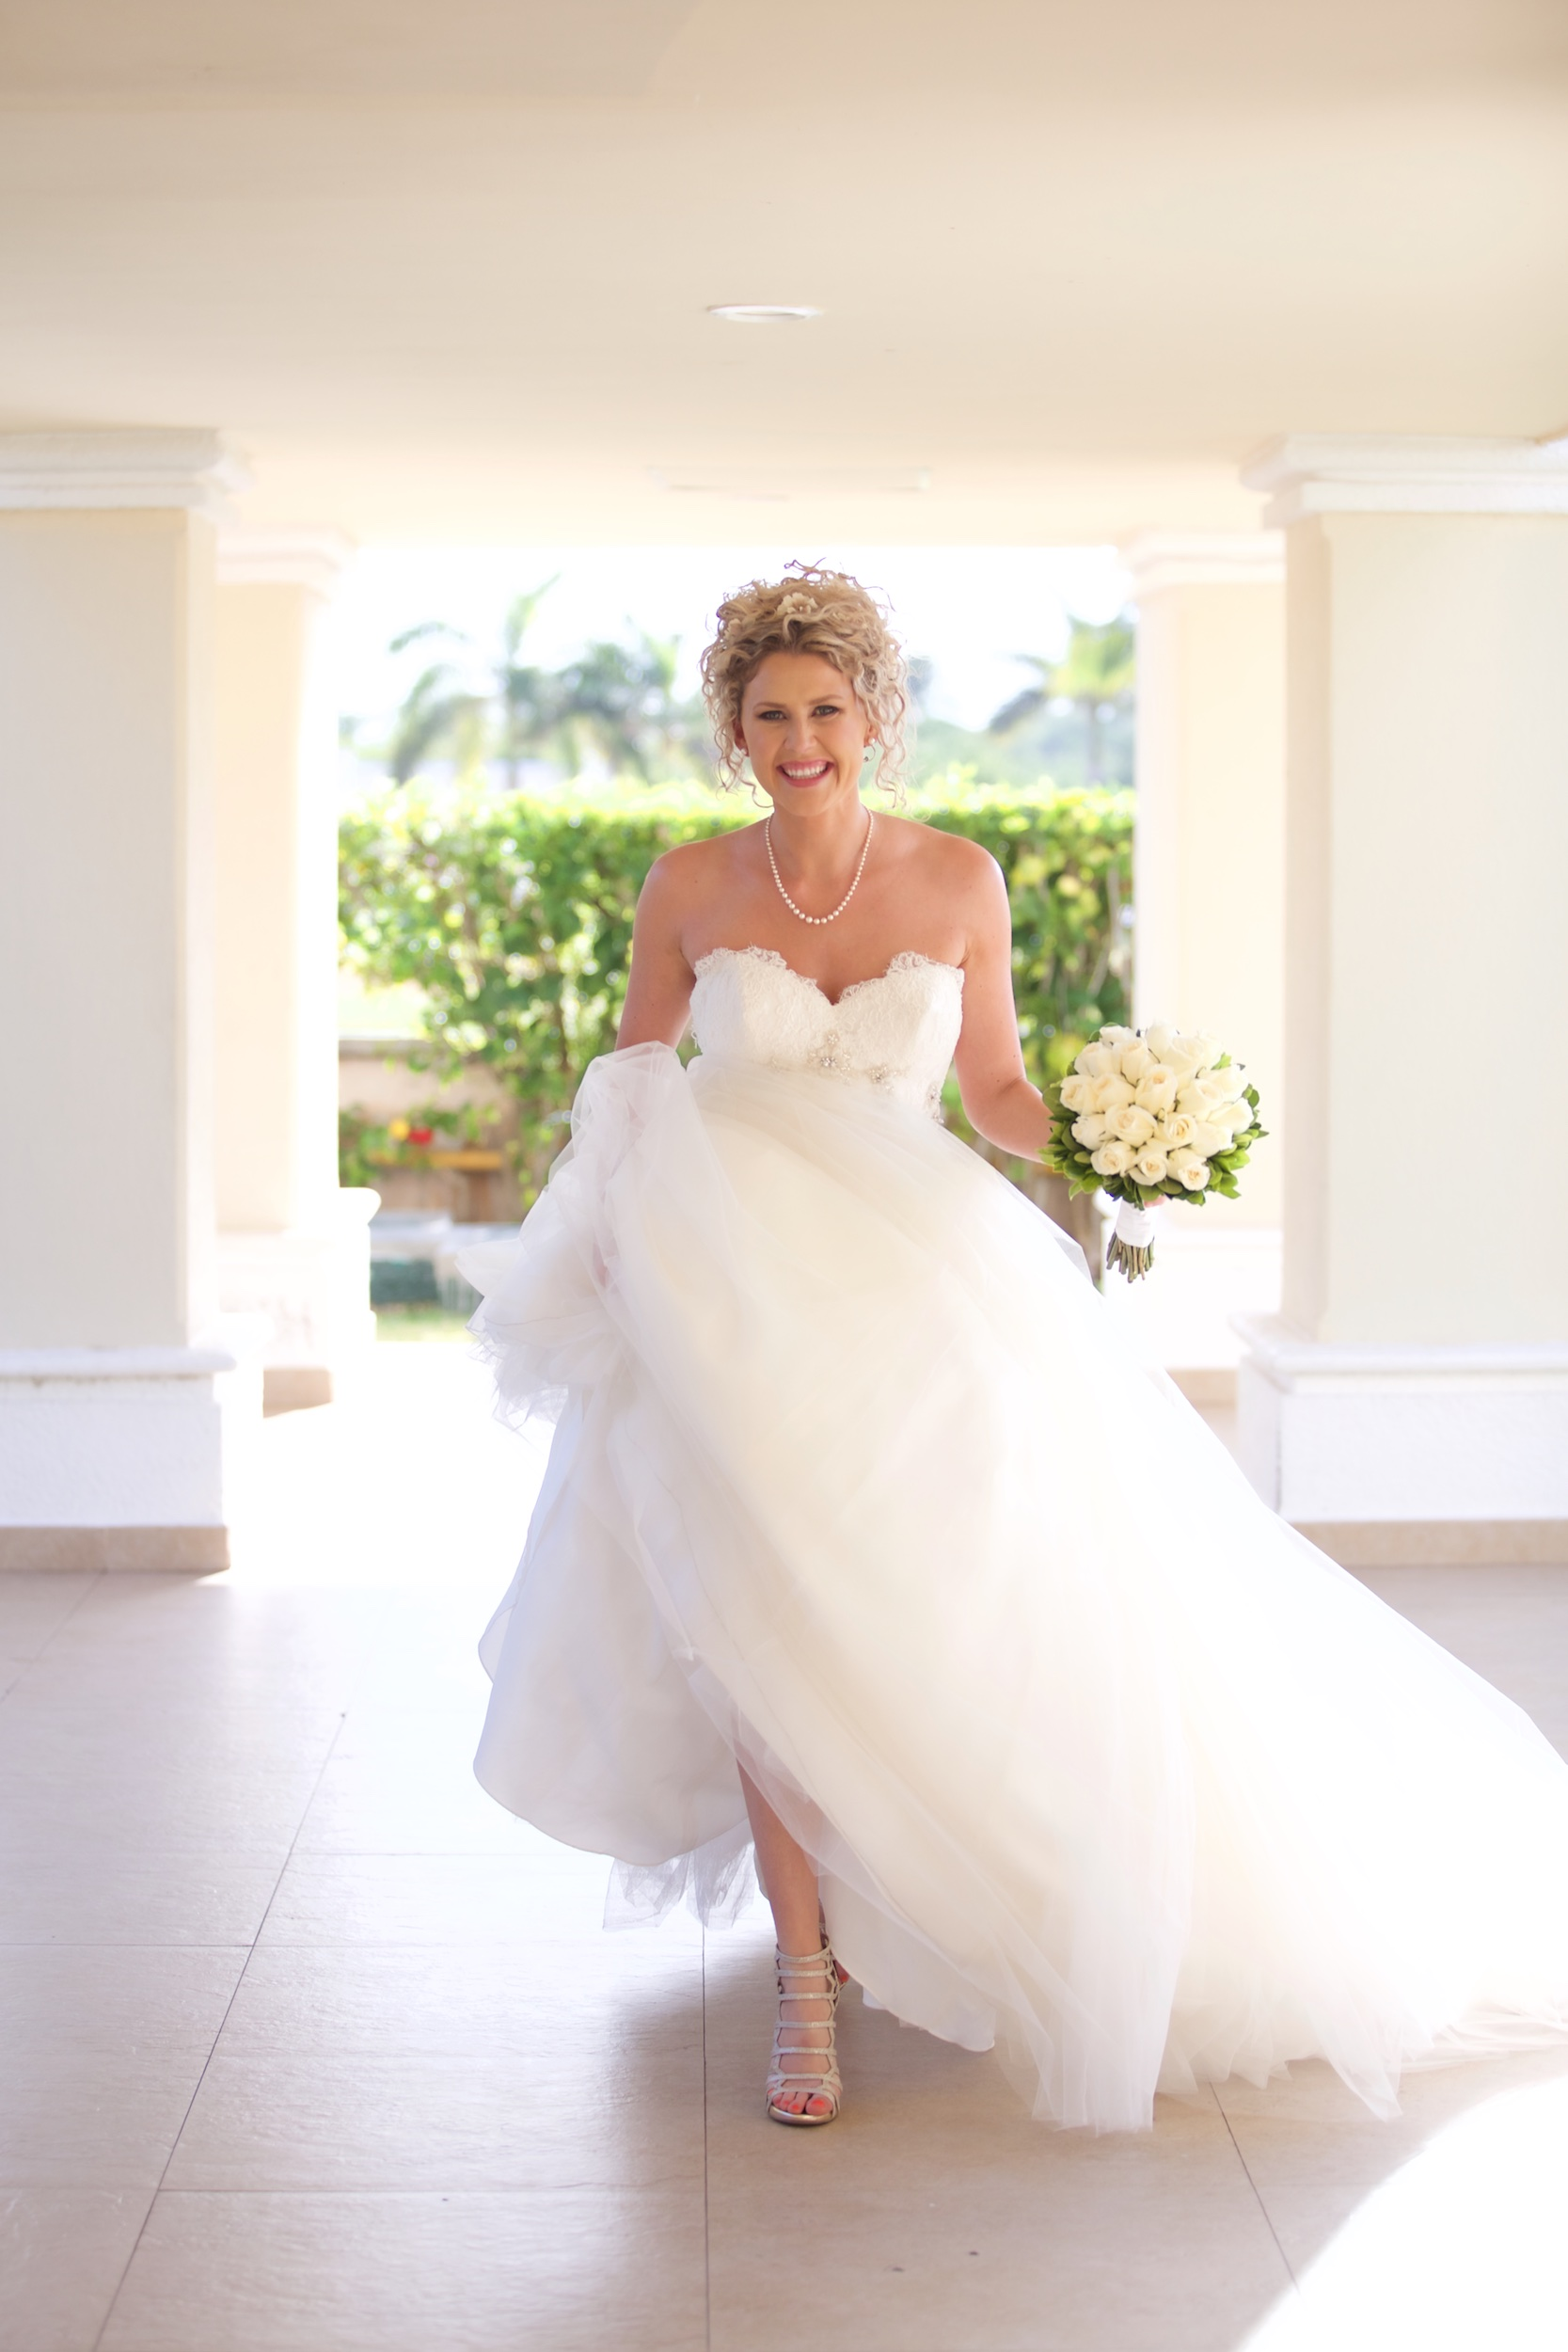 Cancun Wedding 97.jpg